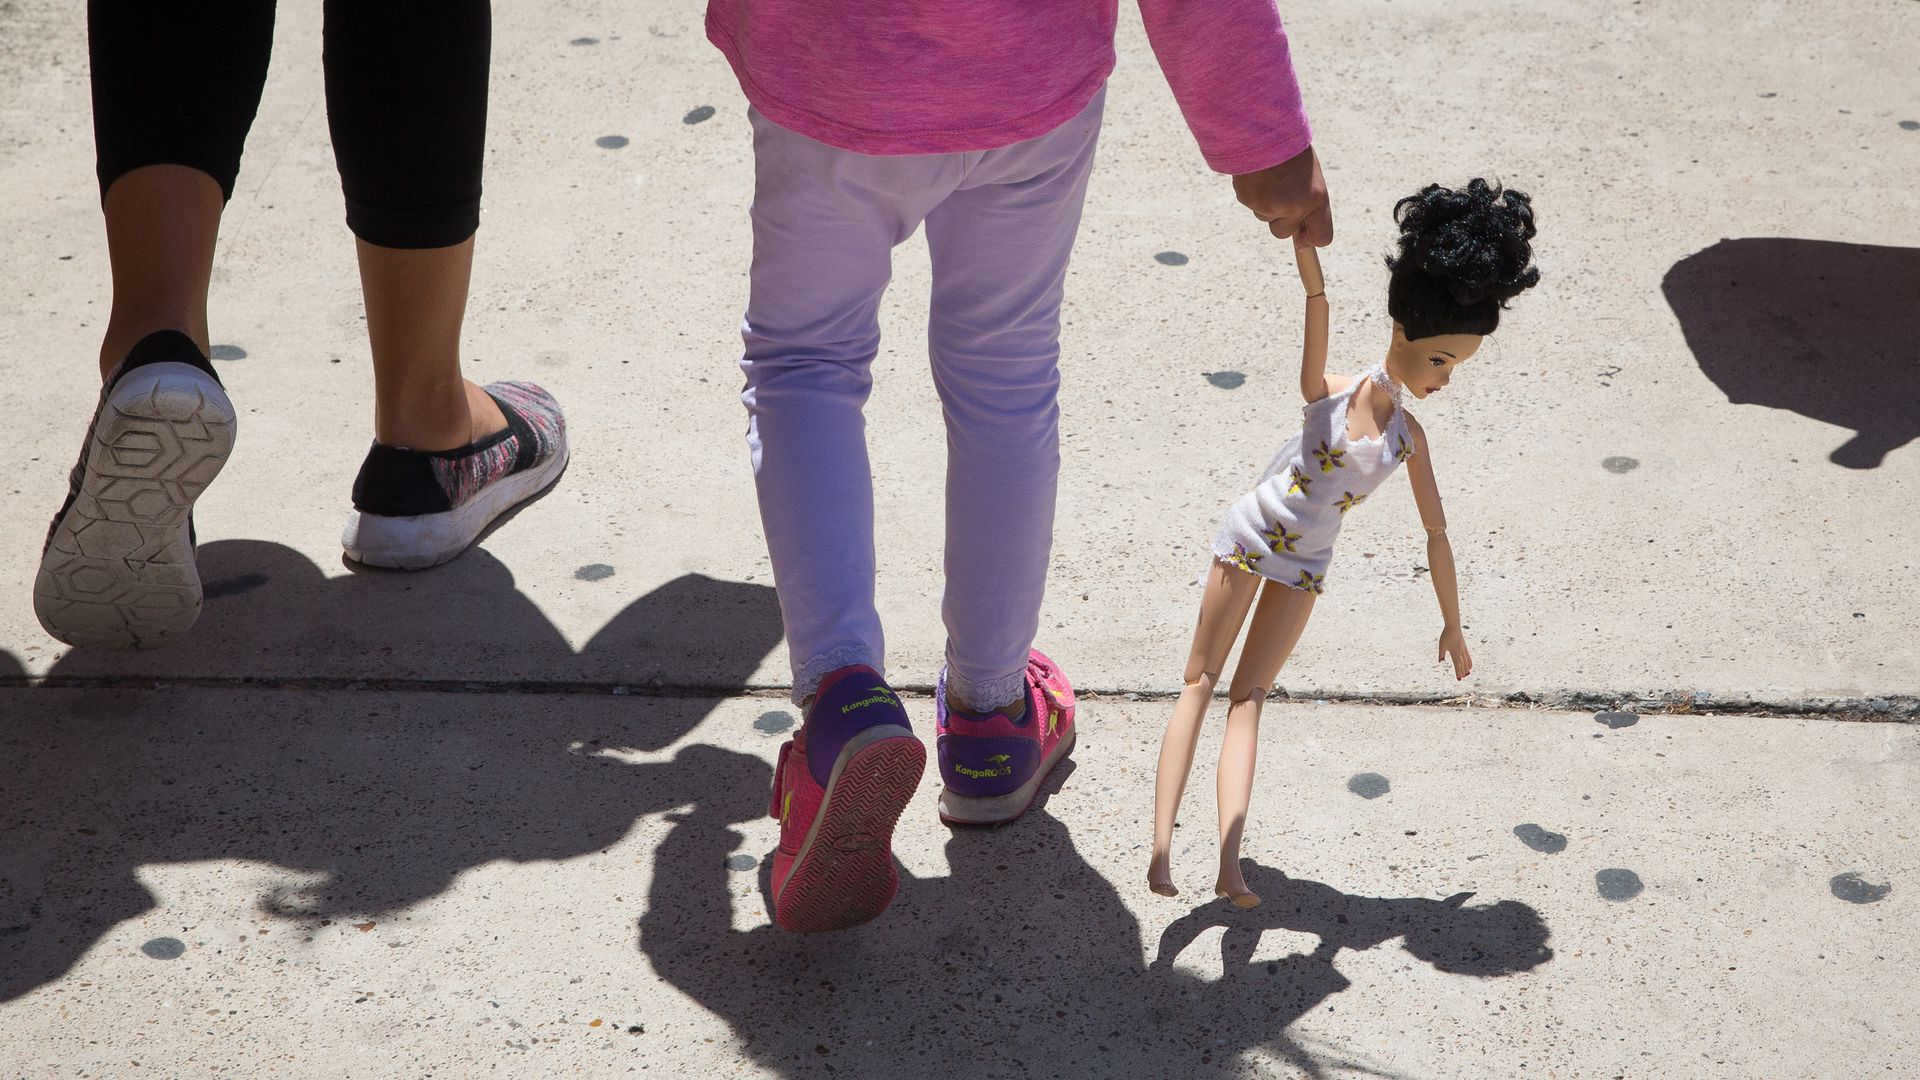 An immigrant mother walking with her child